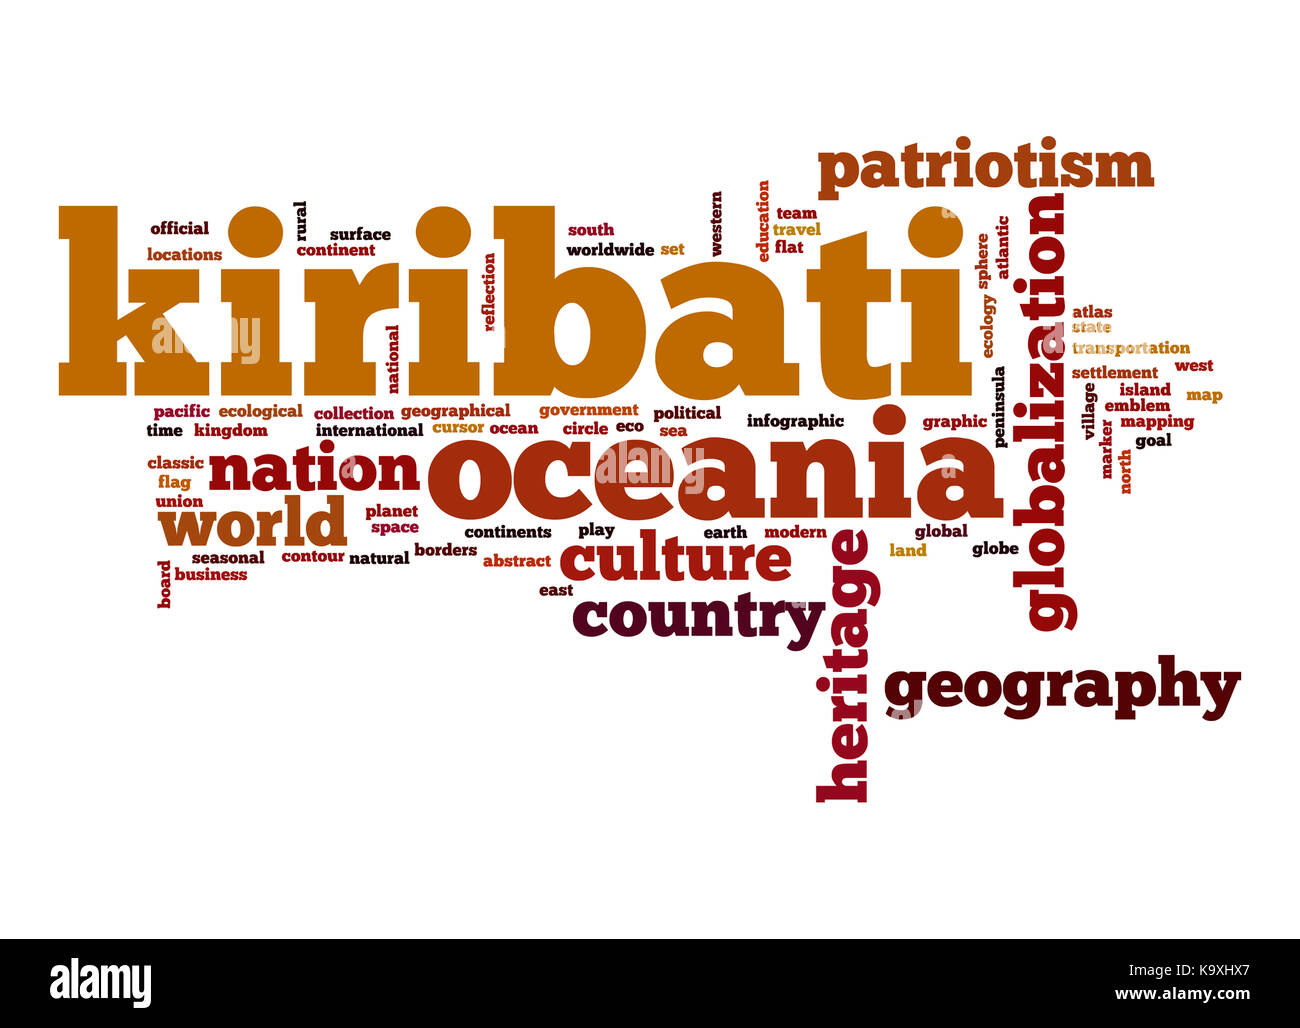 Kiribati word cloud - Stock Image